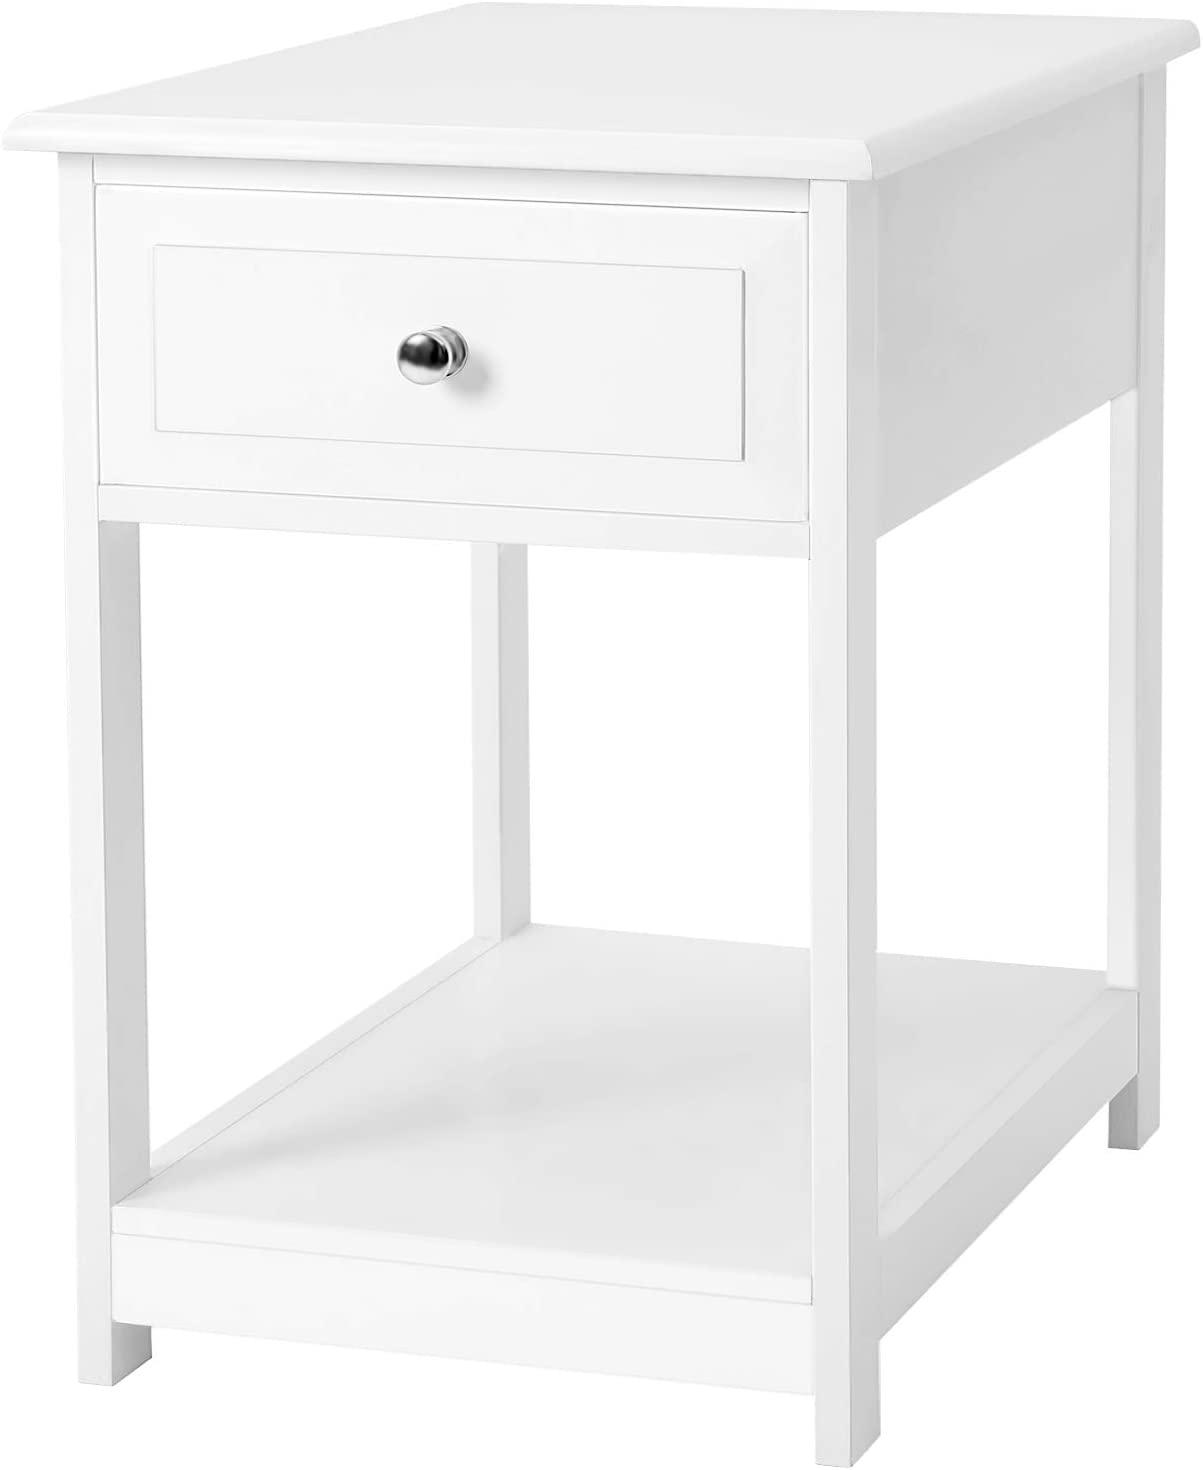 VASAGLE Side, End Table, Nightstand with 1 Drawer, Durable, for Bedroom, Living Room, Office, White